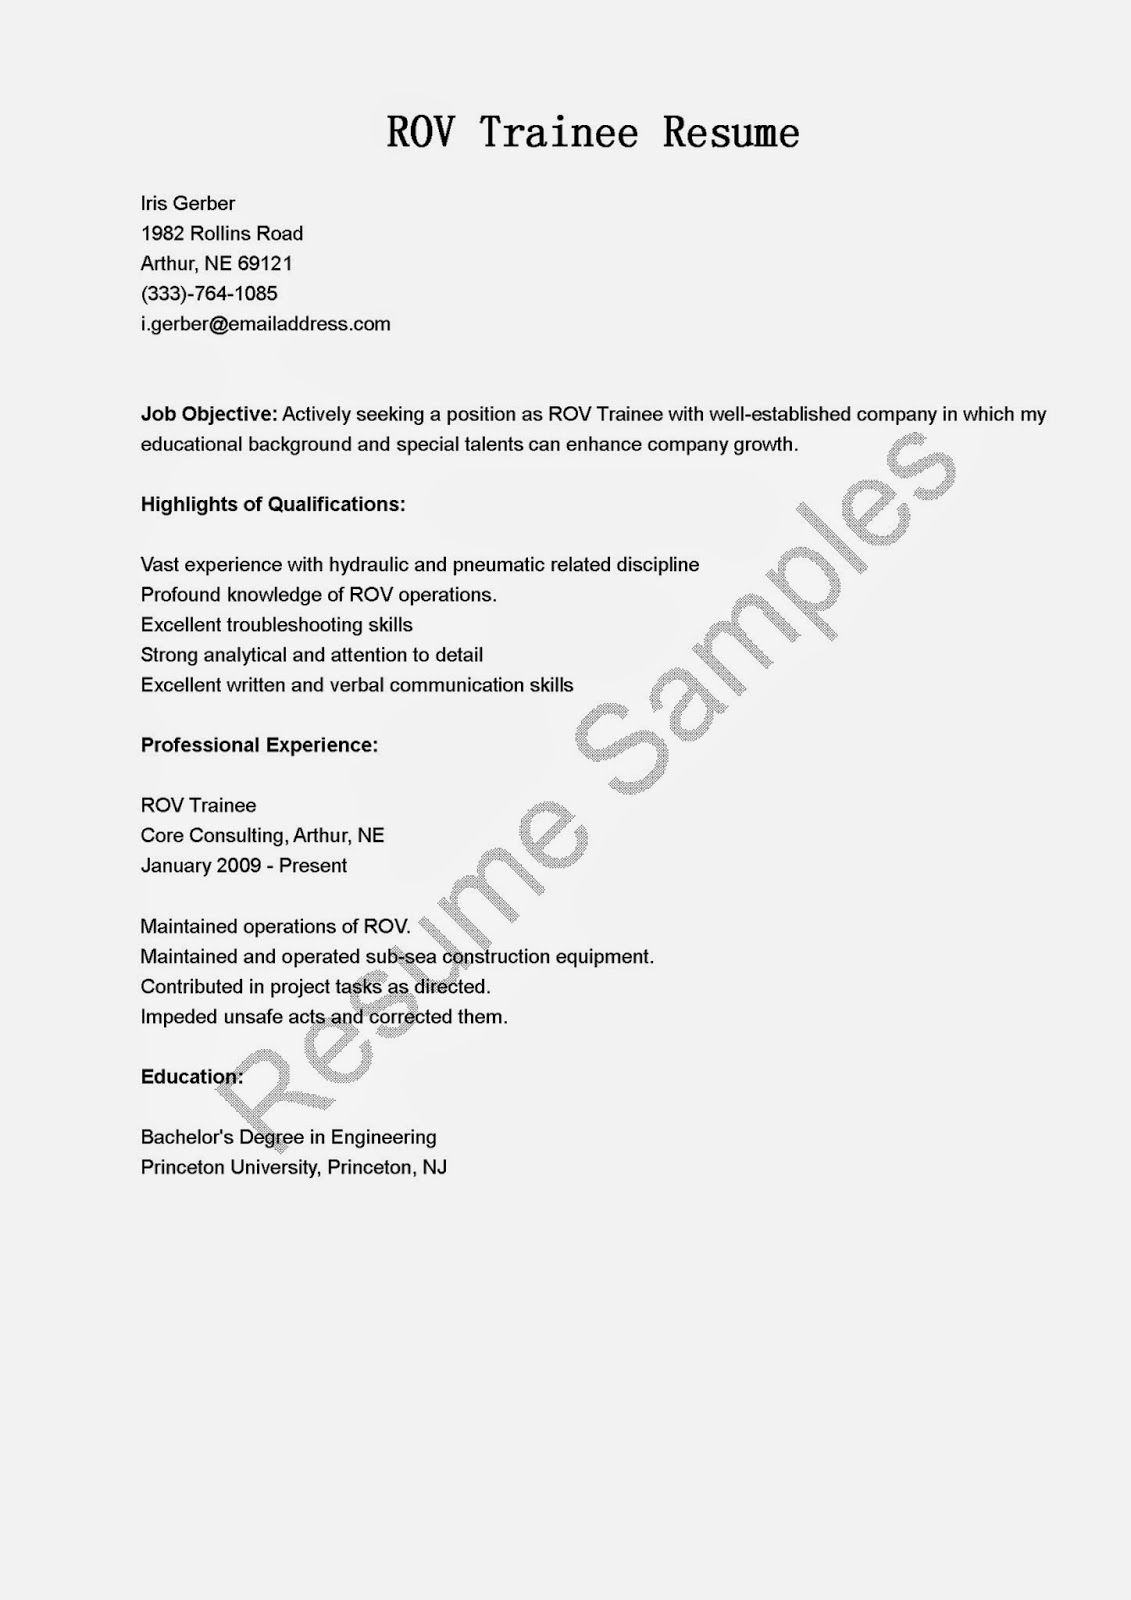 ROV Trainee Resume Sample |Resume Samples | resame | Pinterest ...